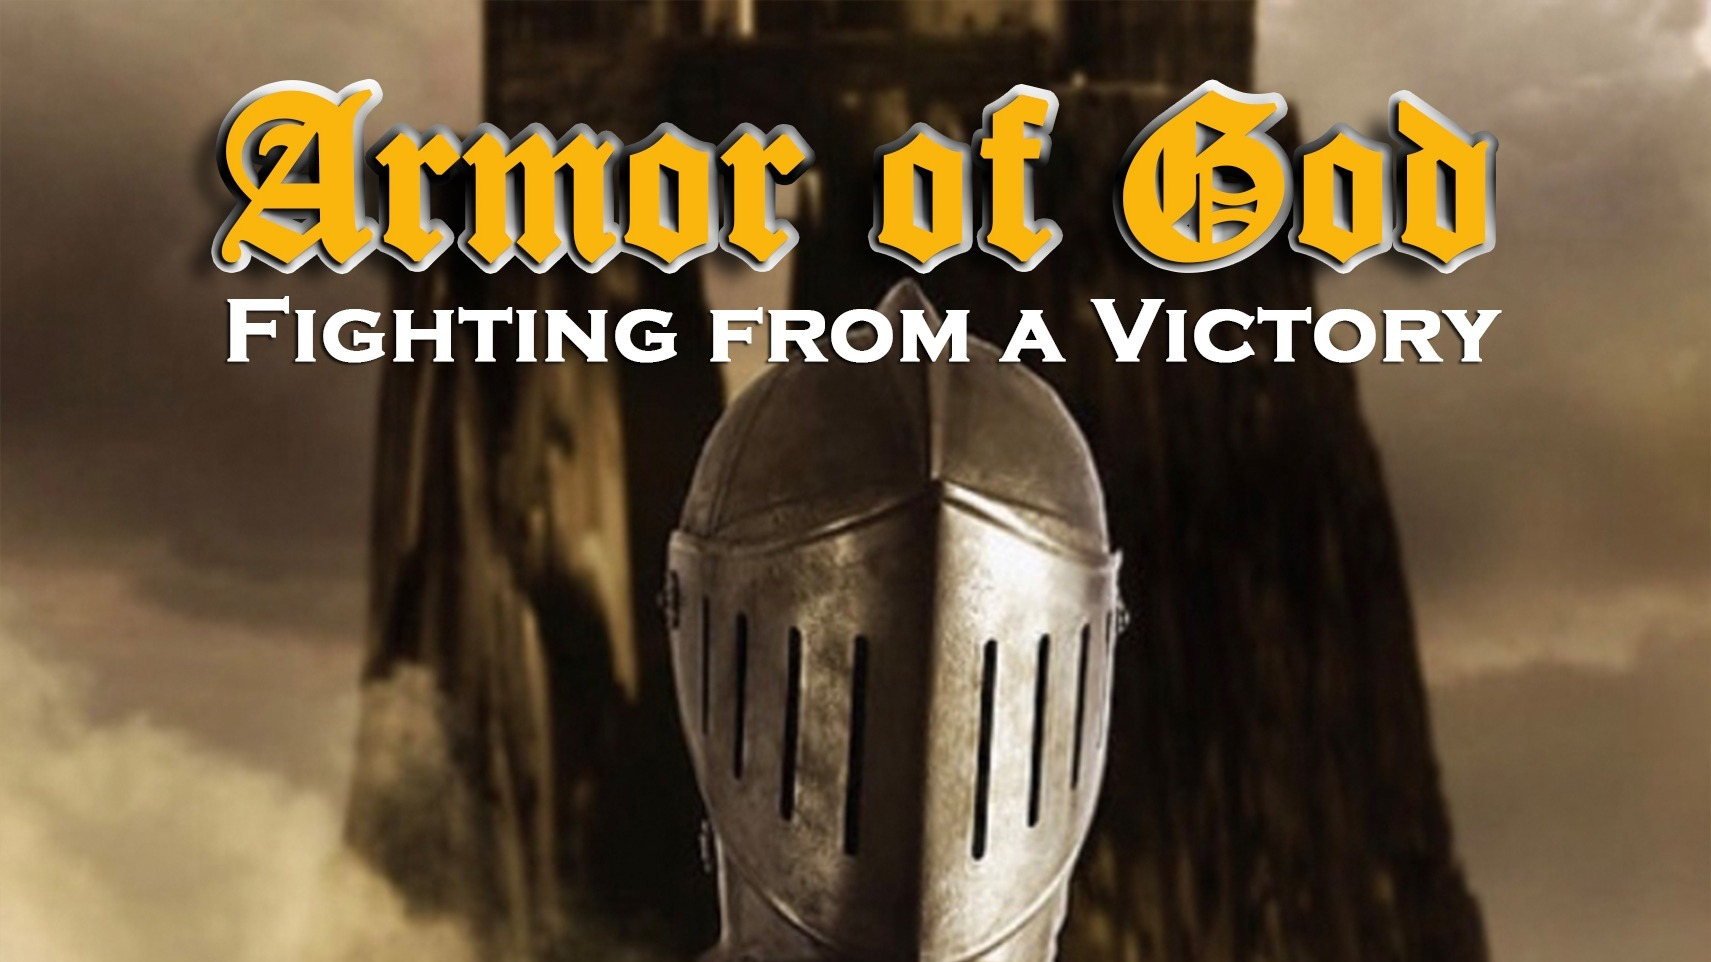 Armor of God: Fighting From a Victory